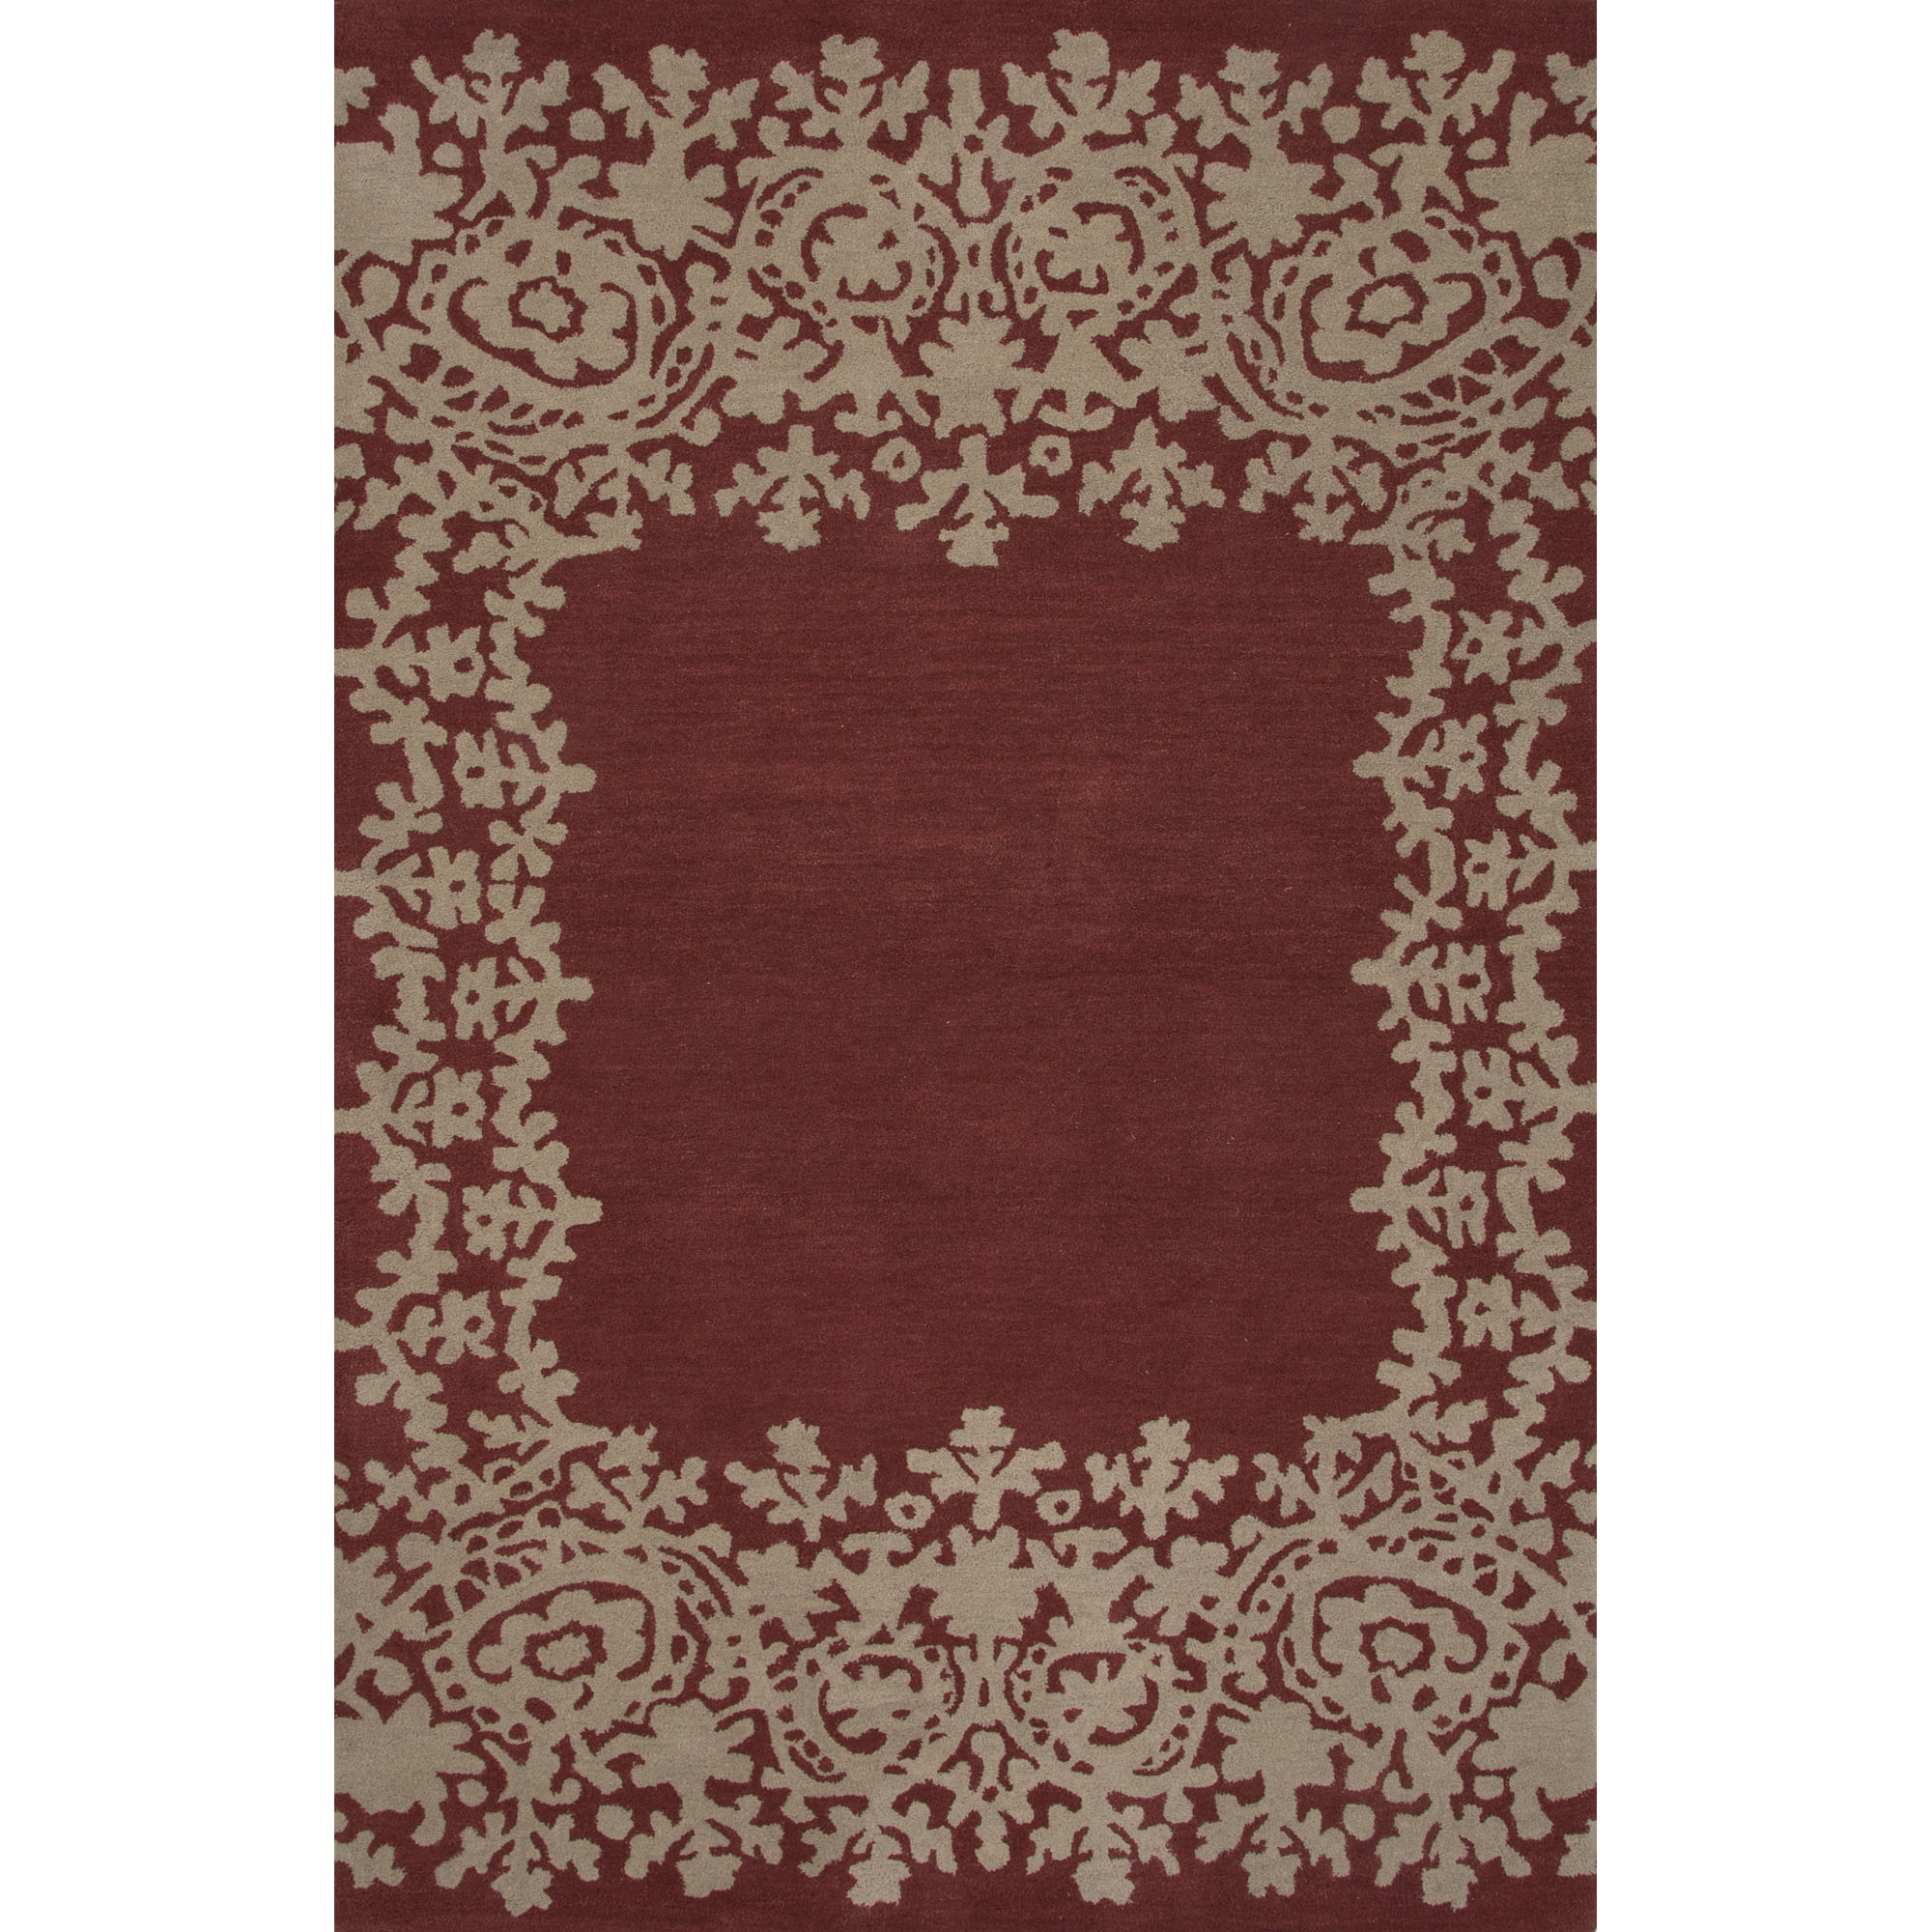 JAIPUR Rugs Traditions Made Modern Tufted 5 x 8 Rug - Item Number: RUG121385